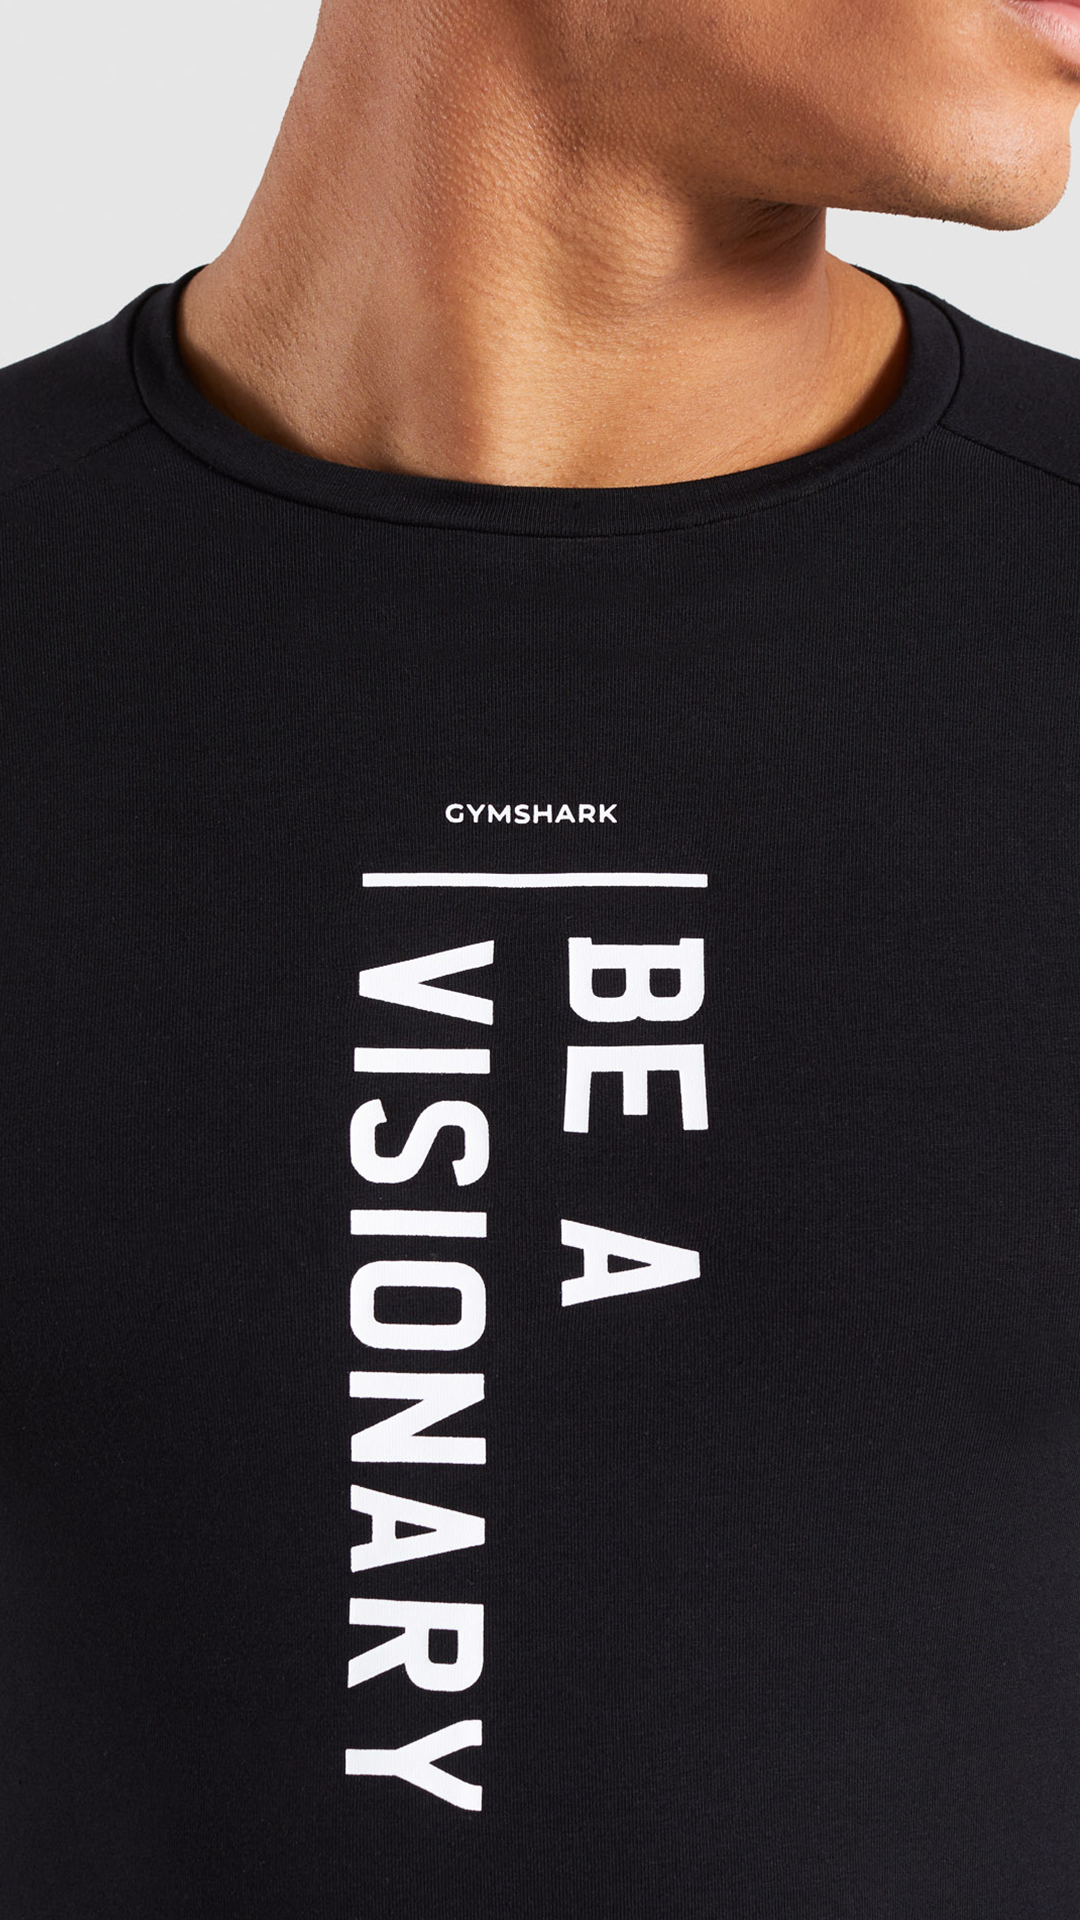 7f29c163b1de You know what to do... Be a Visionary! #Gymshark #Gym #Sweat #Train  #Perform #Top #Exercise #Strength #Strong #Power #Fitness  #OutfitInspiration #Tshirt ...